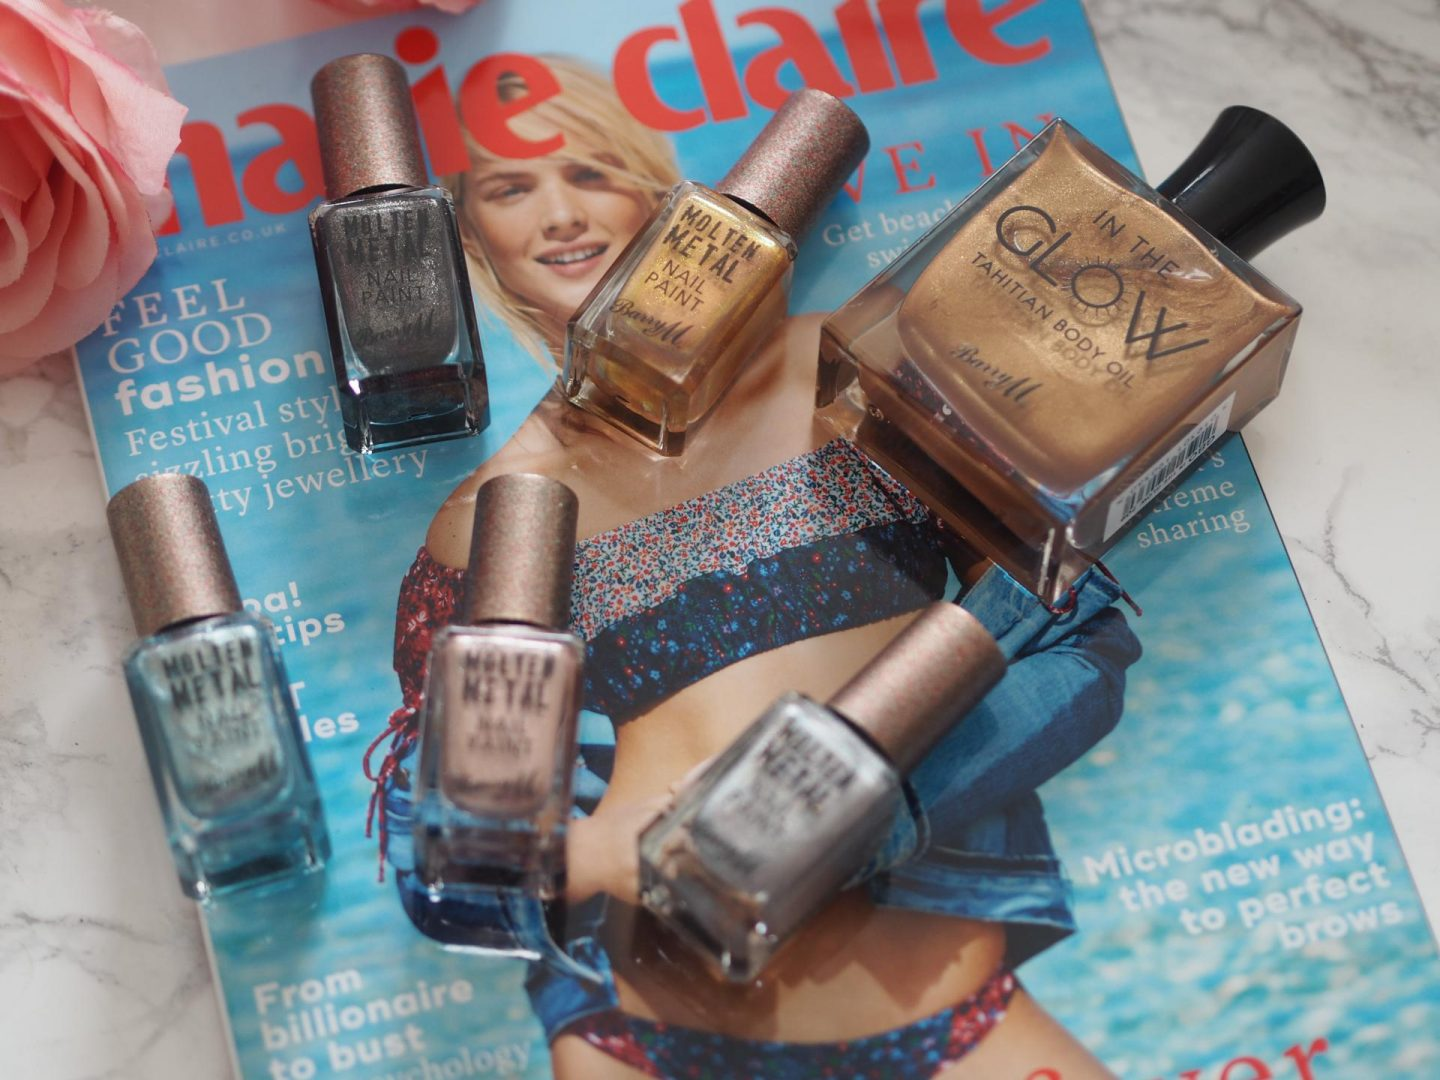 barry m molten metals collection and best drugstore beauty buys